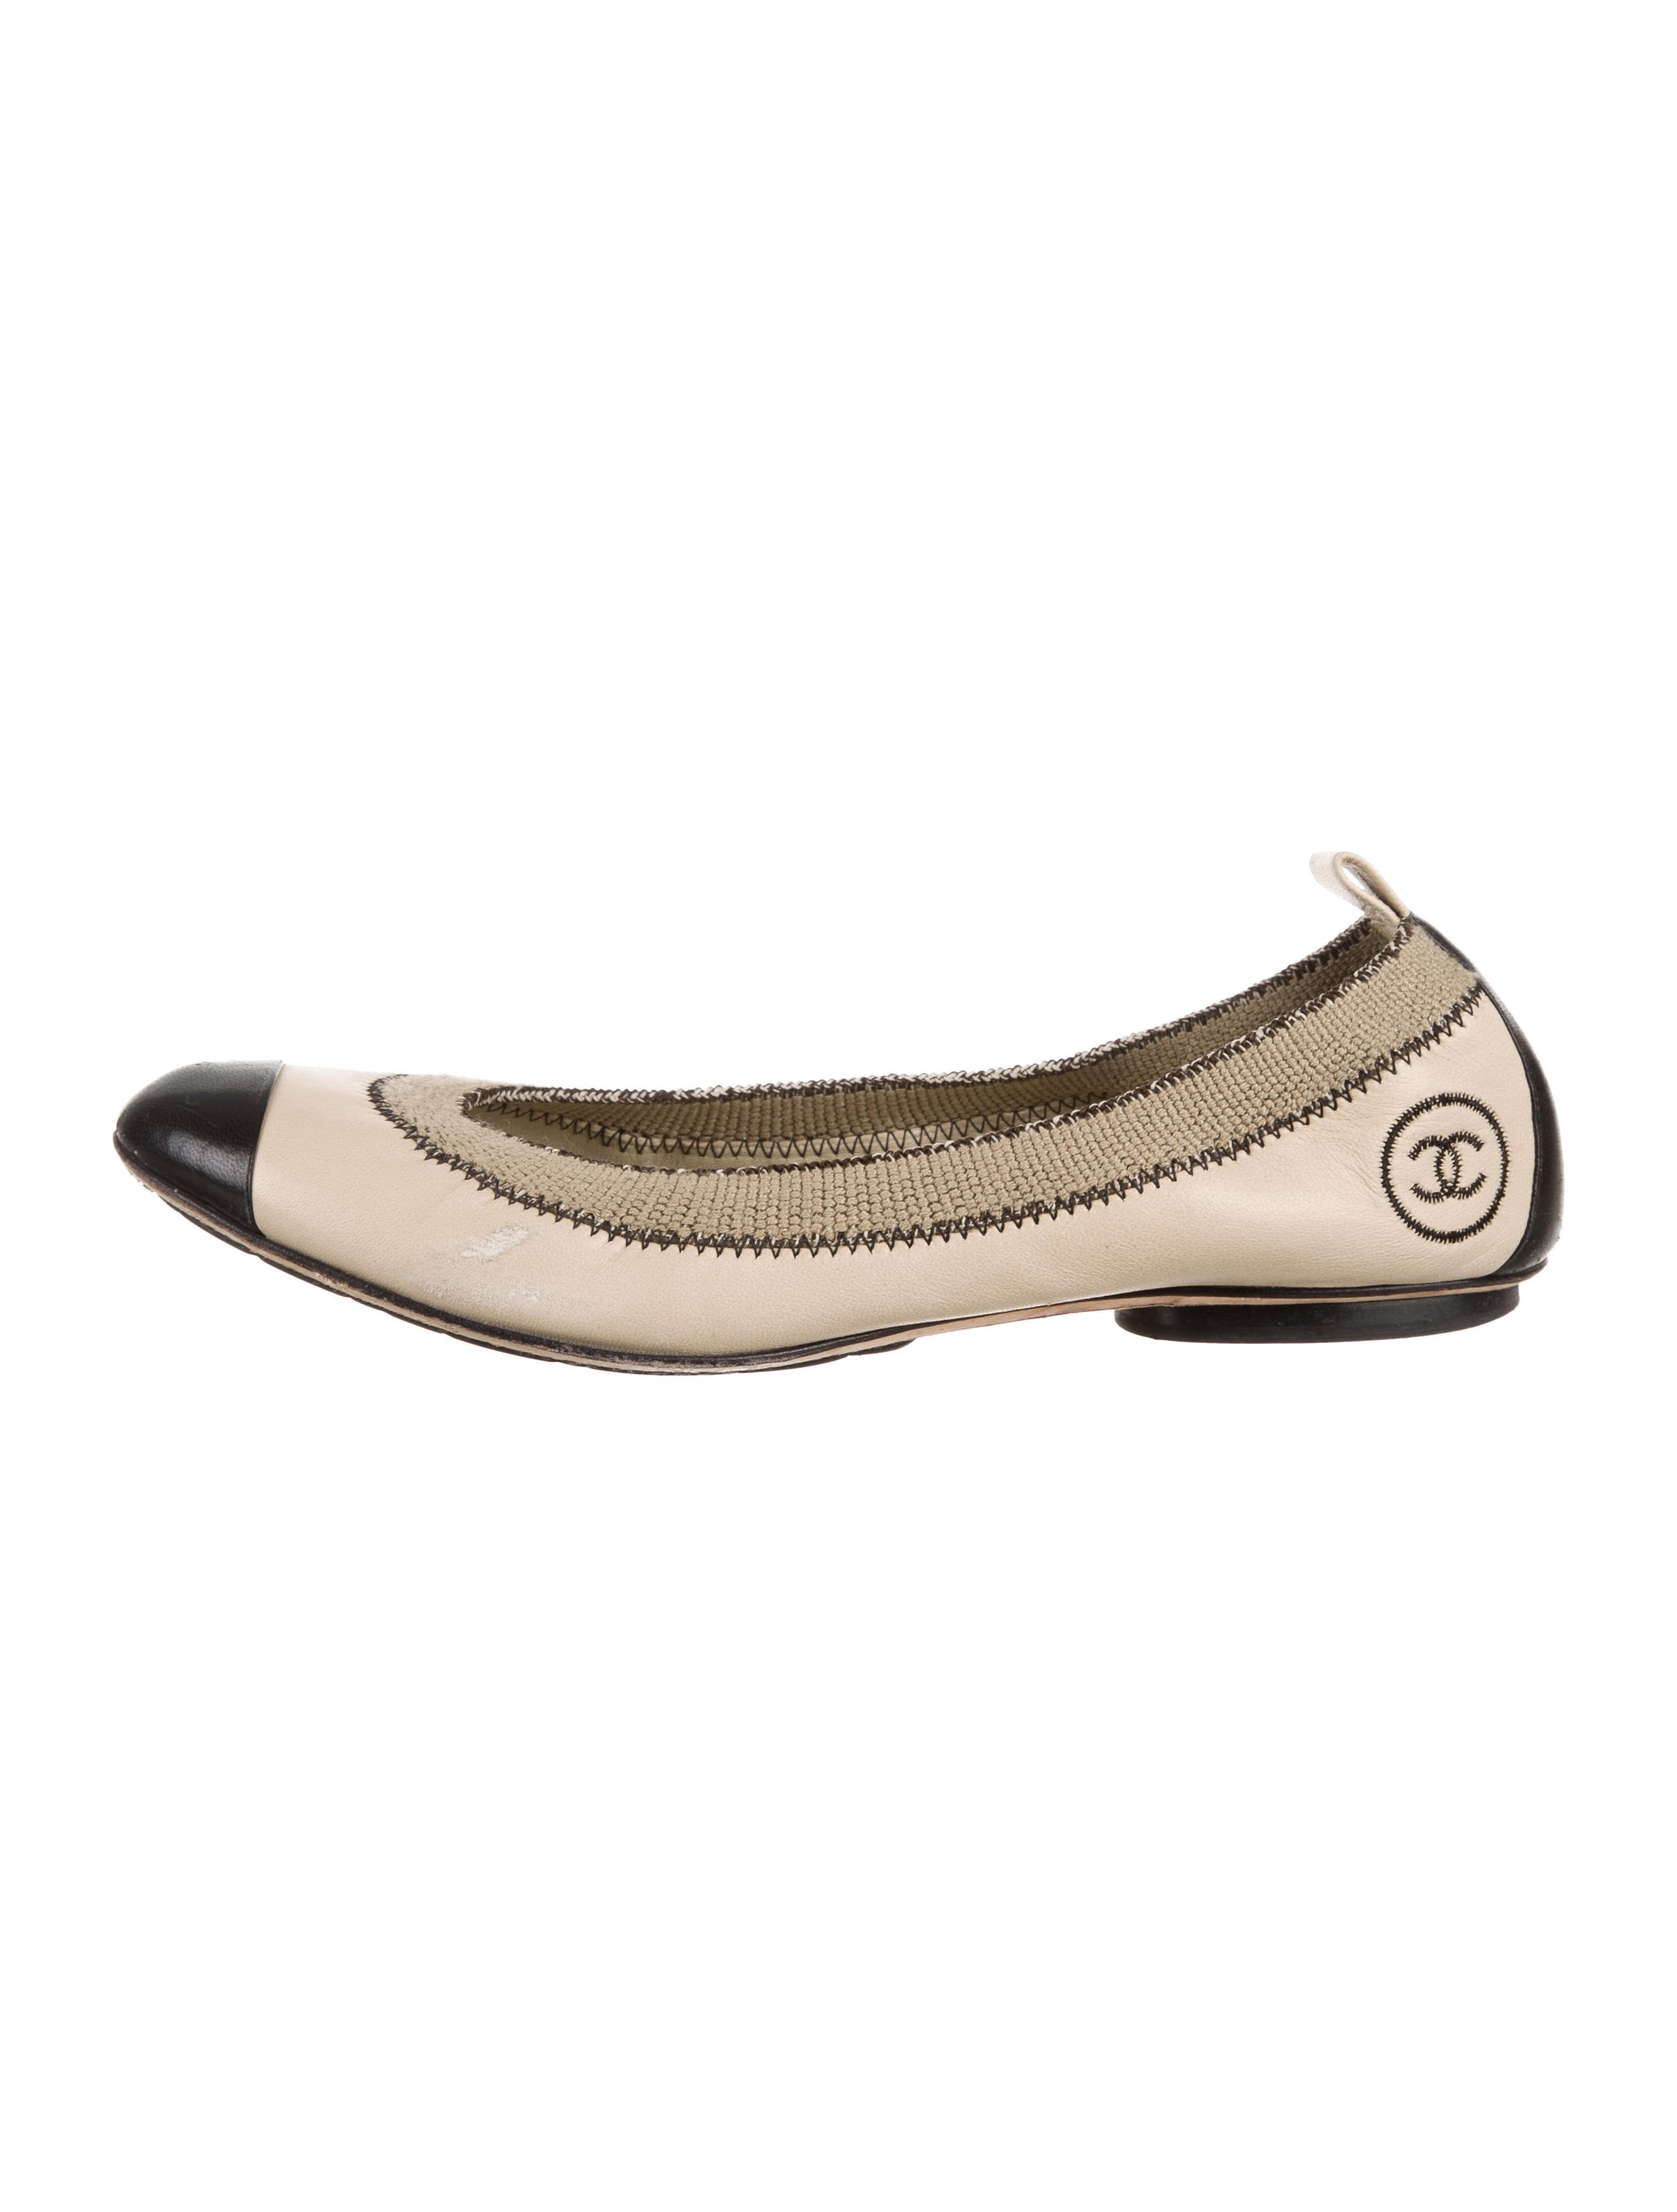 a0bc5a0197 Chanel Stretch Spirit Flats - Shoes - CHA323472 | The RealReal